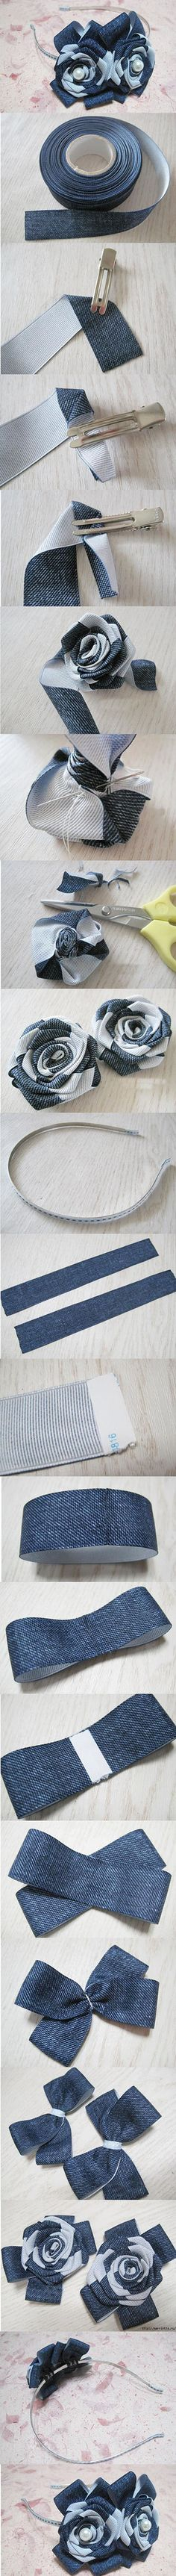 Very Beautiful Jean Craft | DIY & Crafts Tutorials